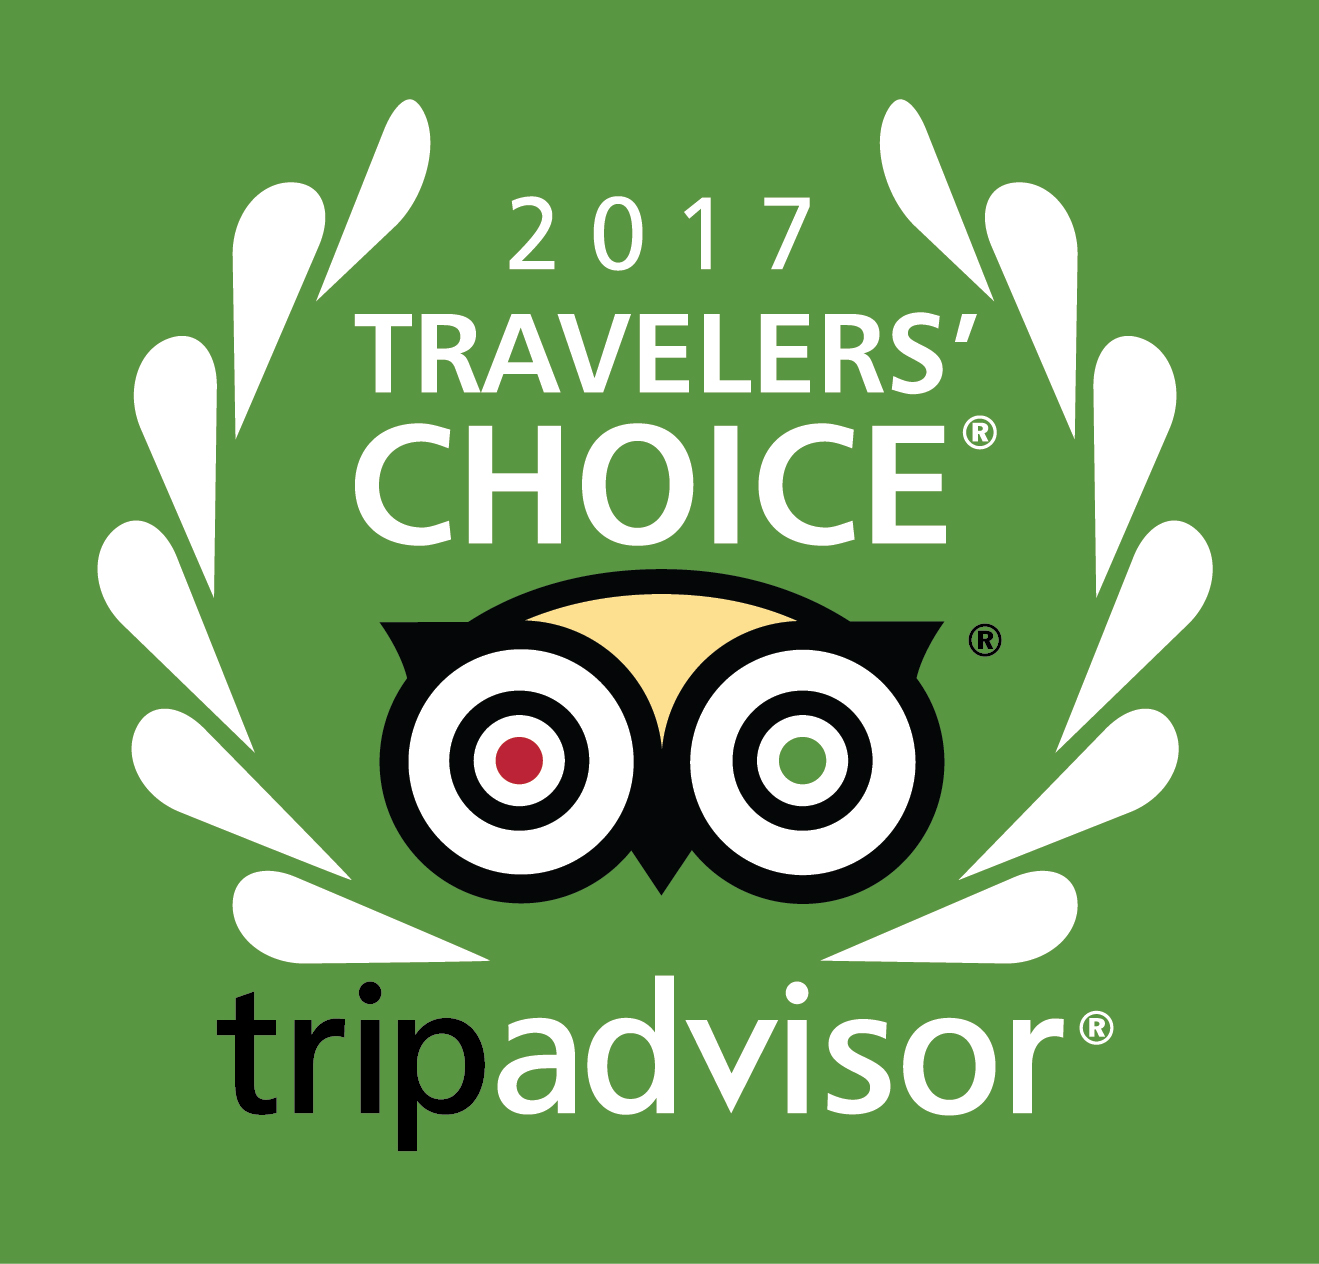 Traveler's Choice Award 2017